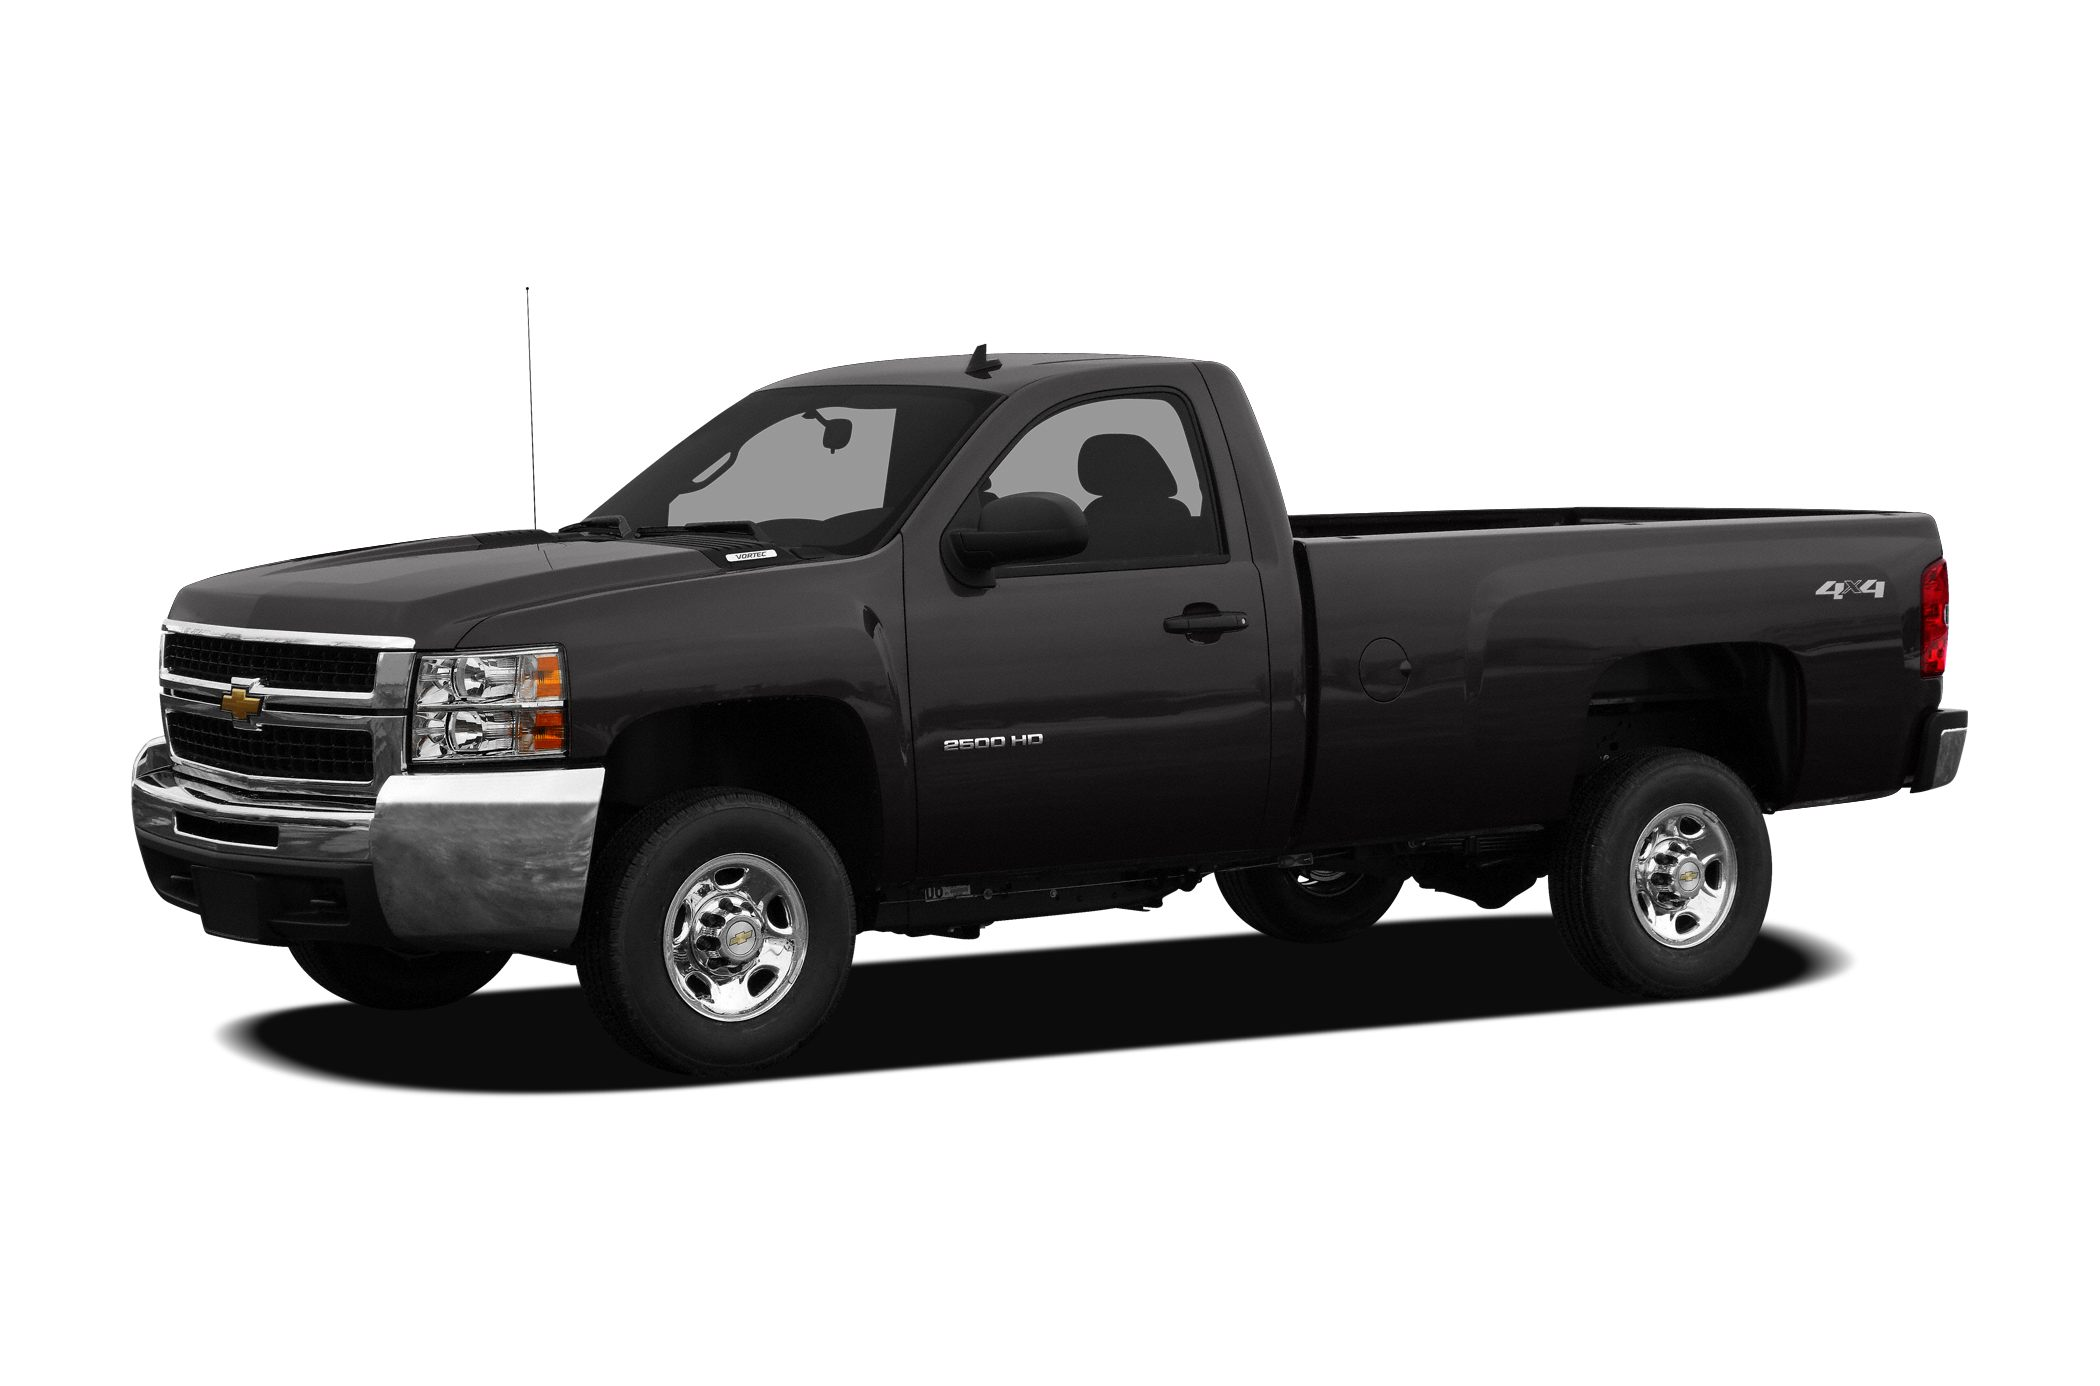 2009 Chevrolet Silverado 2500hd Pricing And Specs